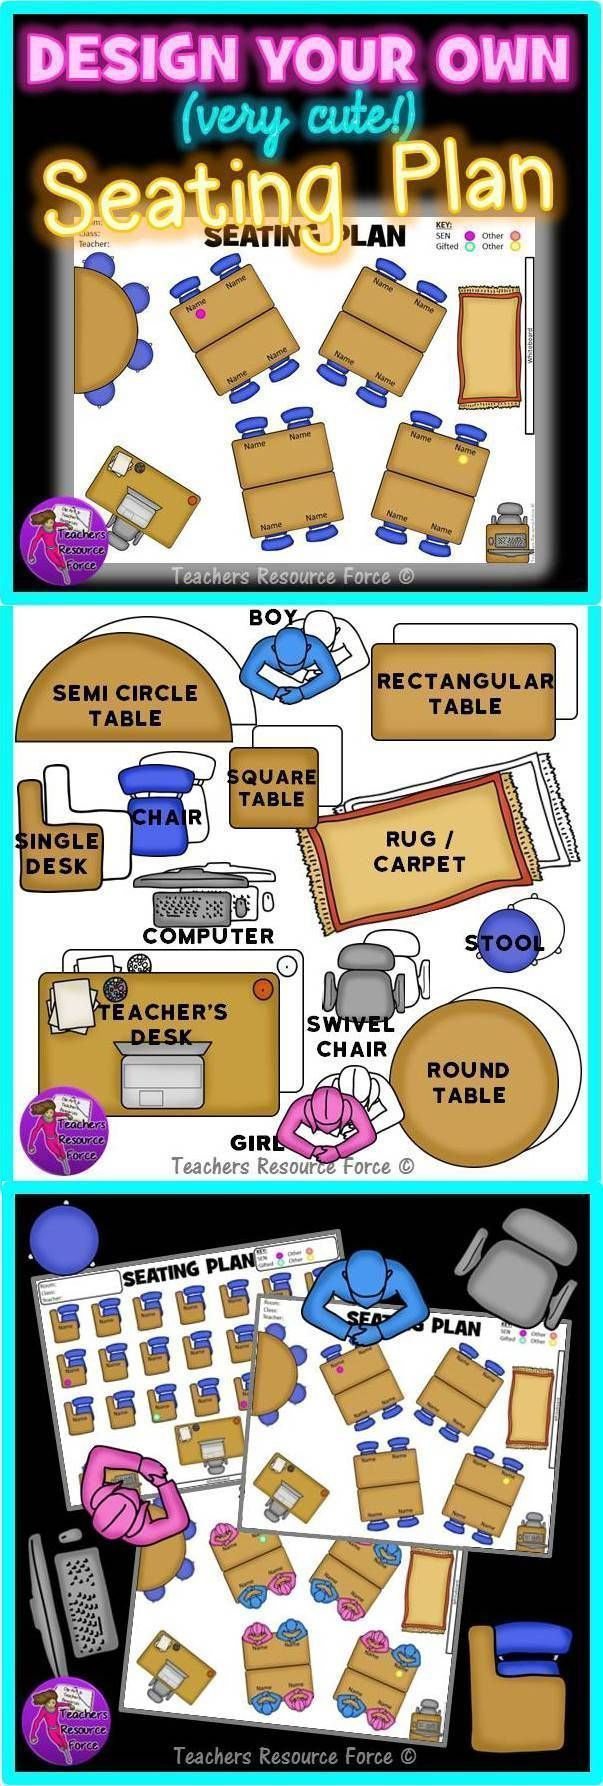 Design your own seating plan! We teachers do like everything to look fabulous, don't we! Why then, do our seating charts consist of boring rectangles most of the time!? Frustrated by the dull look of seating plans and uninspired shapes we have to work wit